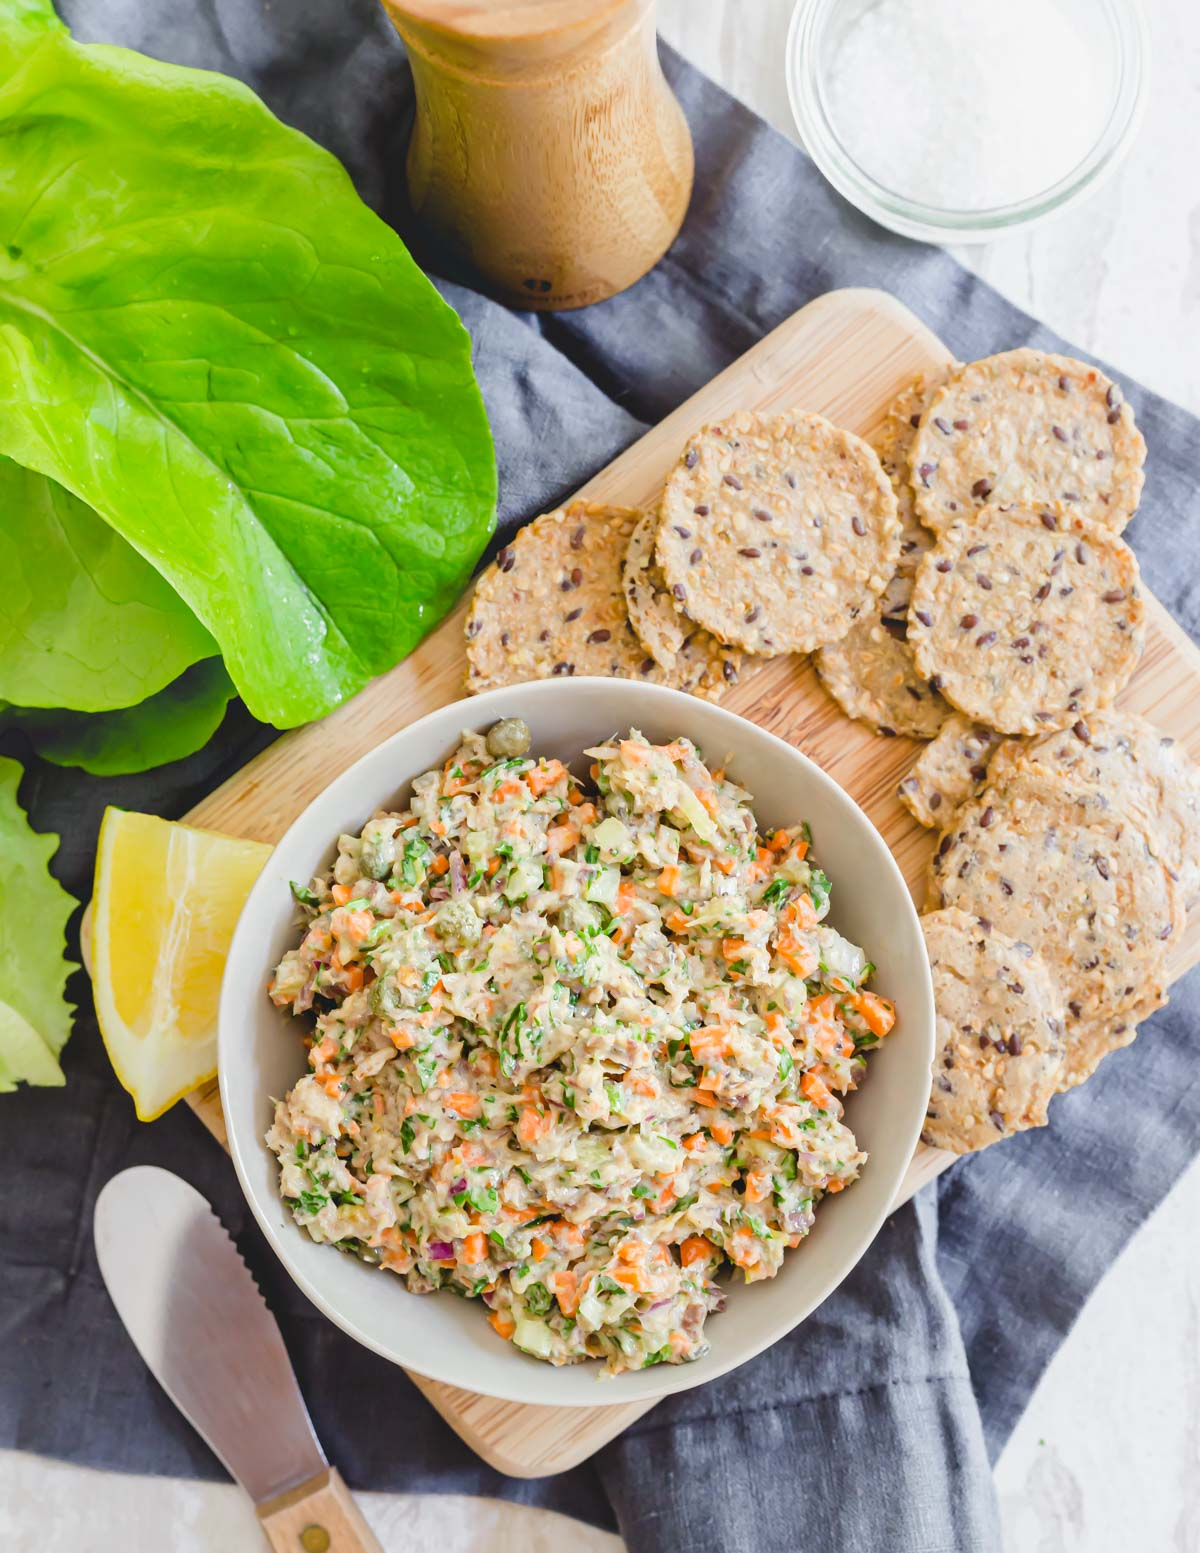 Simple sardine salad recipe in a bowl served with crackers on the side.